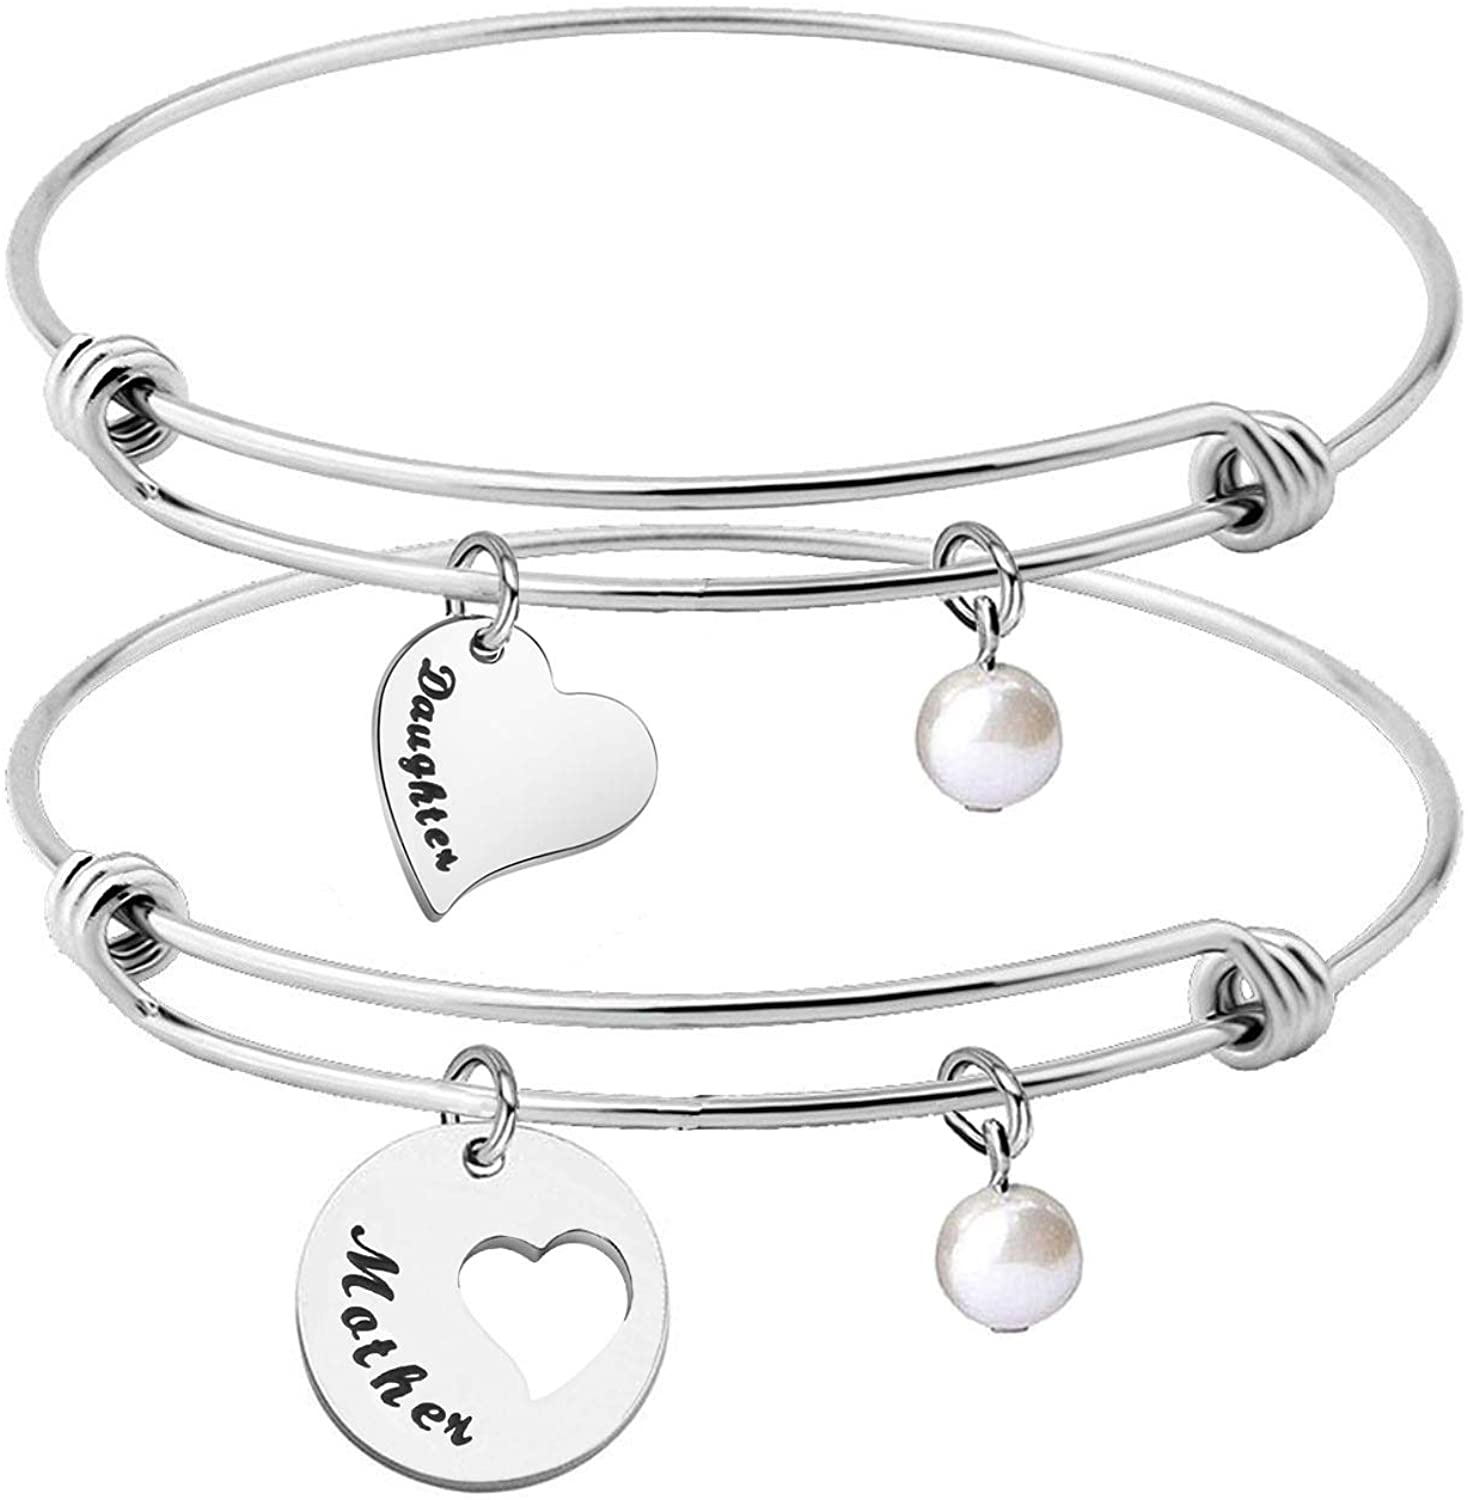 CHOORO Mother Daughter Heart Cutout Bracelet Set of 2/3/4 Mom and Me Jewelry